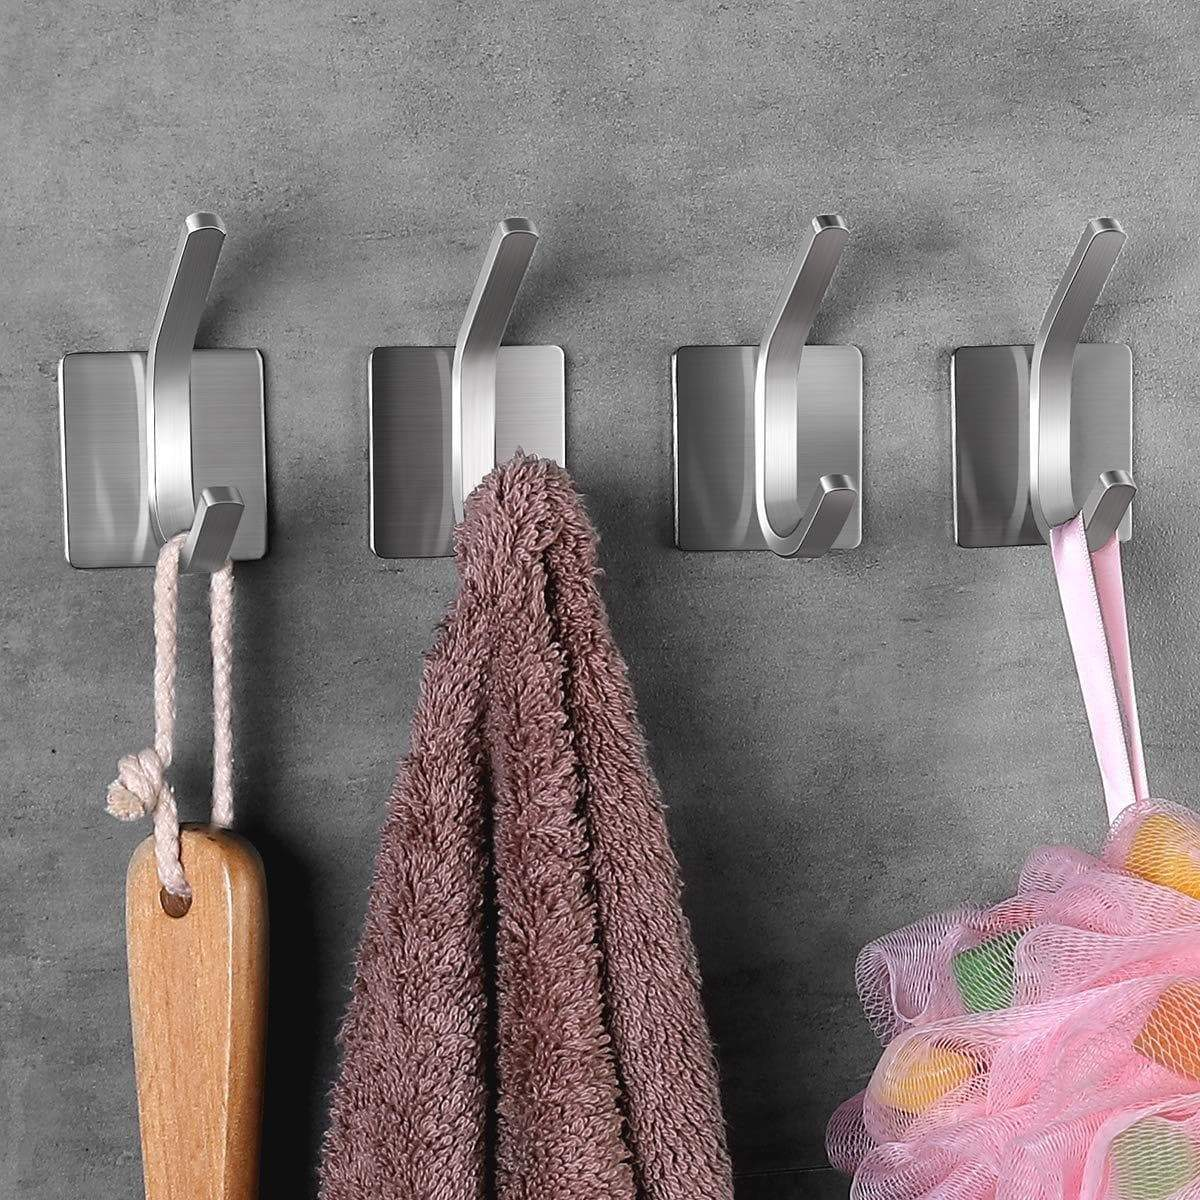 Discover fle coat hooks adhesive hooks bathroom towel hooks wall hooks stainless steel hooks bath robe hook wall mount 4 pack